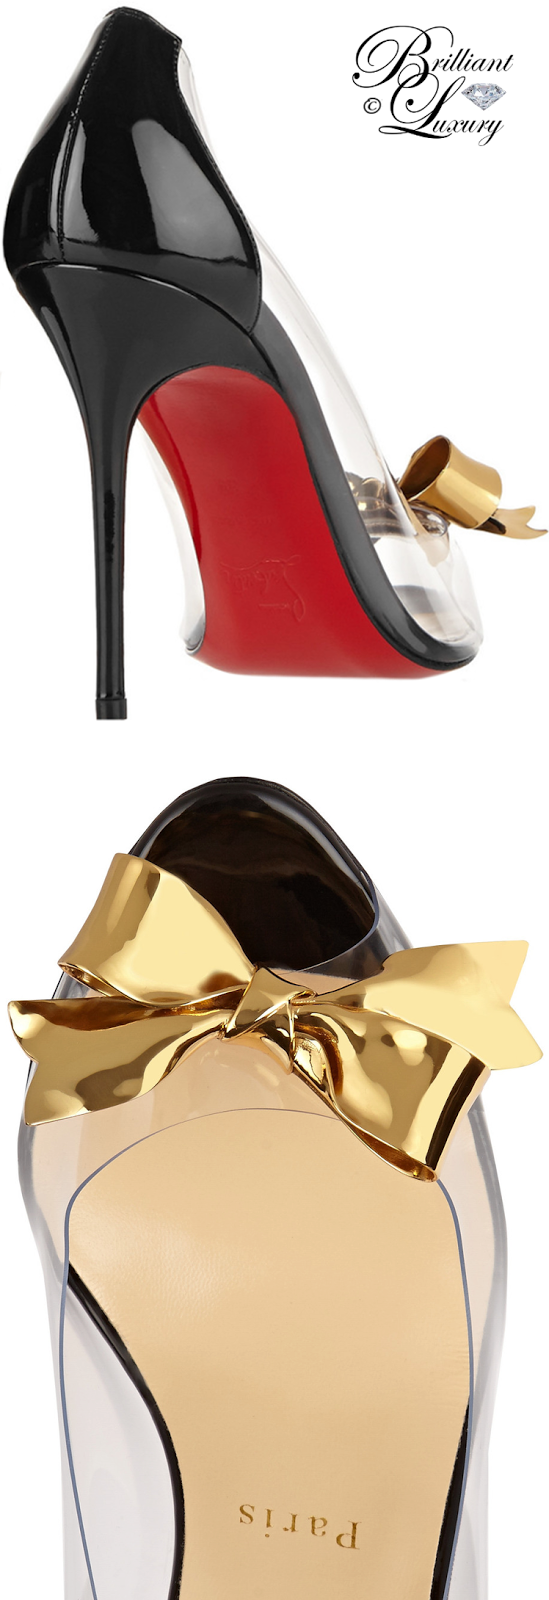 Brilliant Luxury ♦ Christian Louboutin Justinodo Pumps